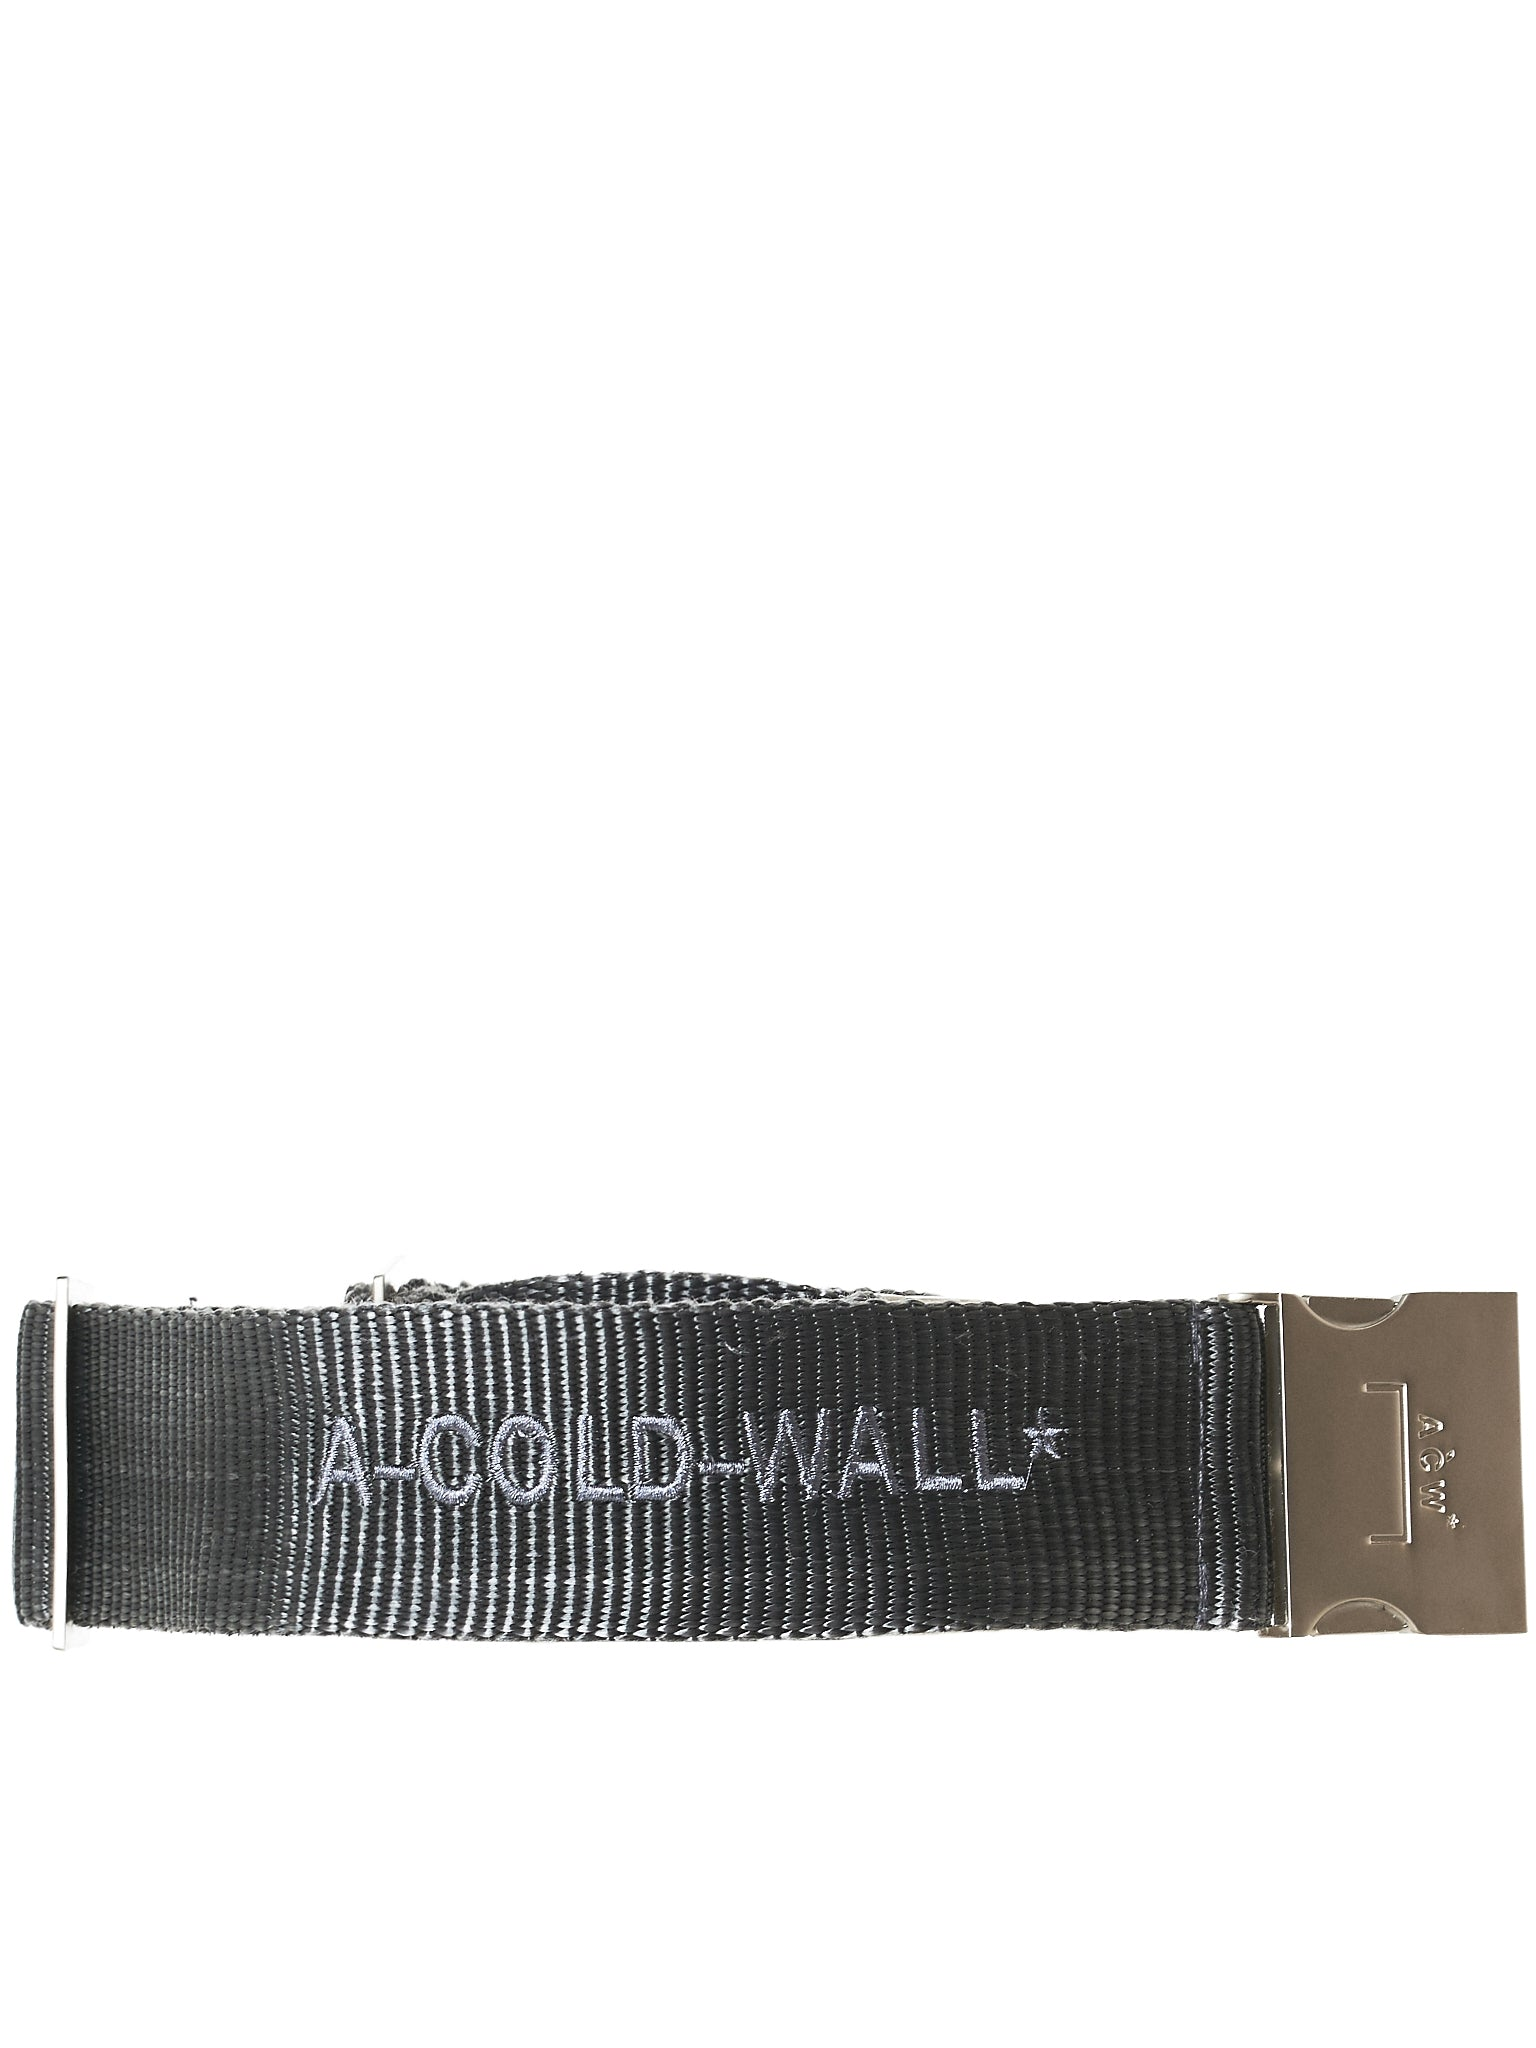 Grey and Black Webbing Belt A-Cold-Wall*